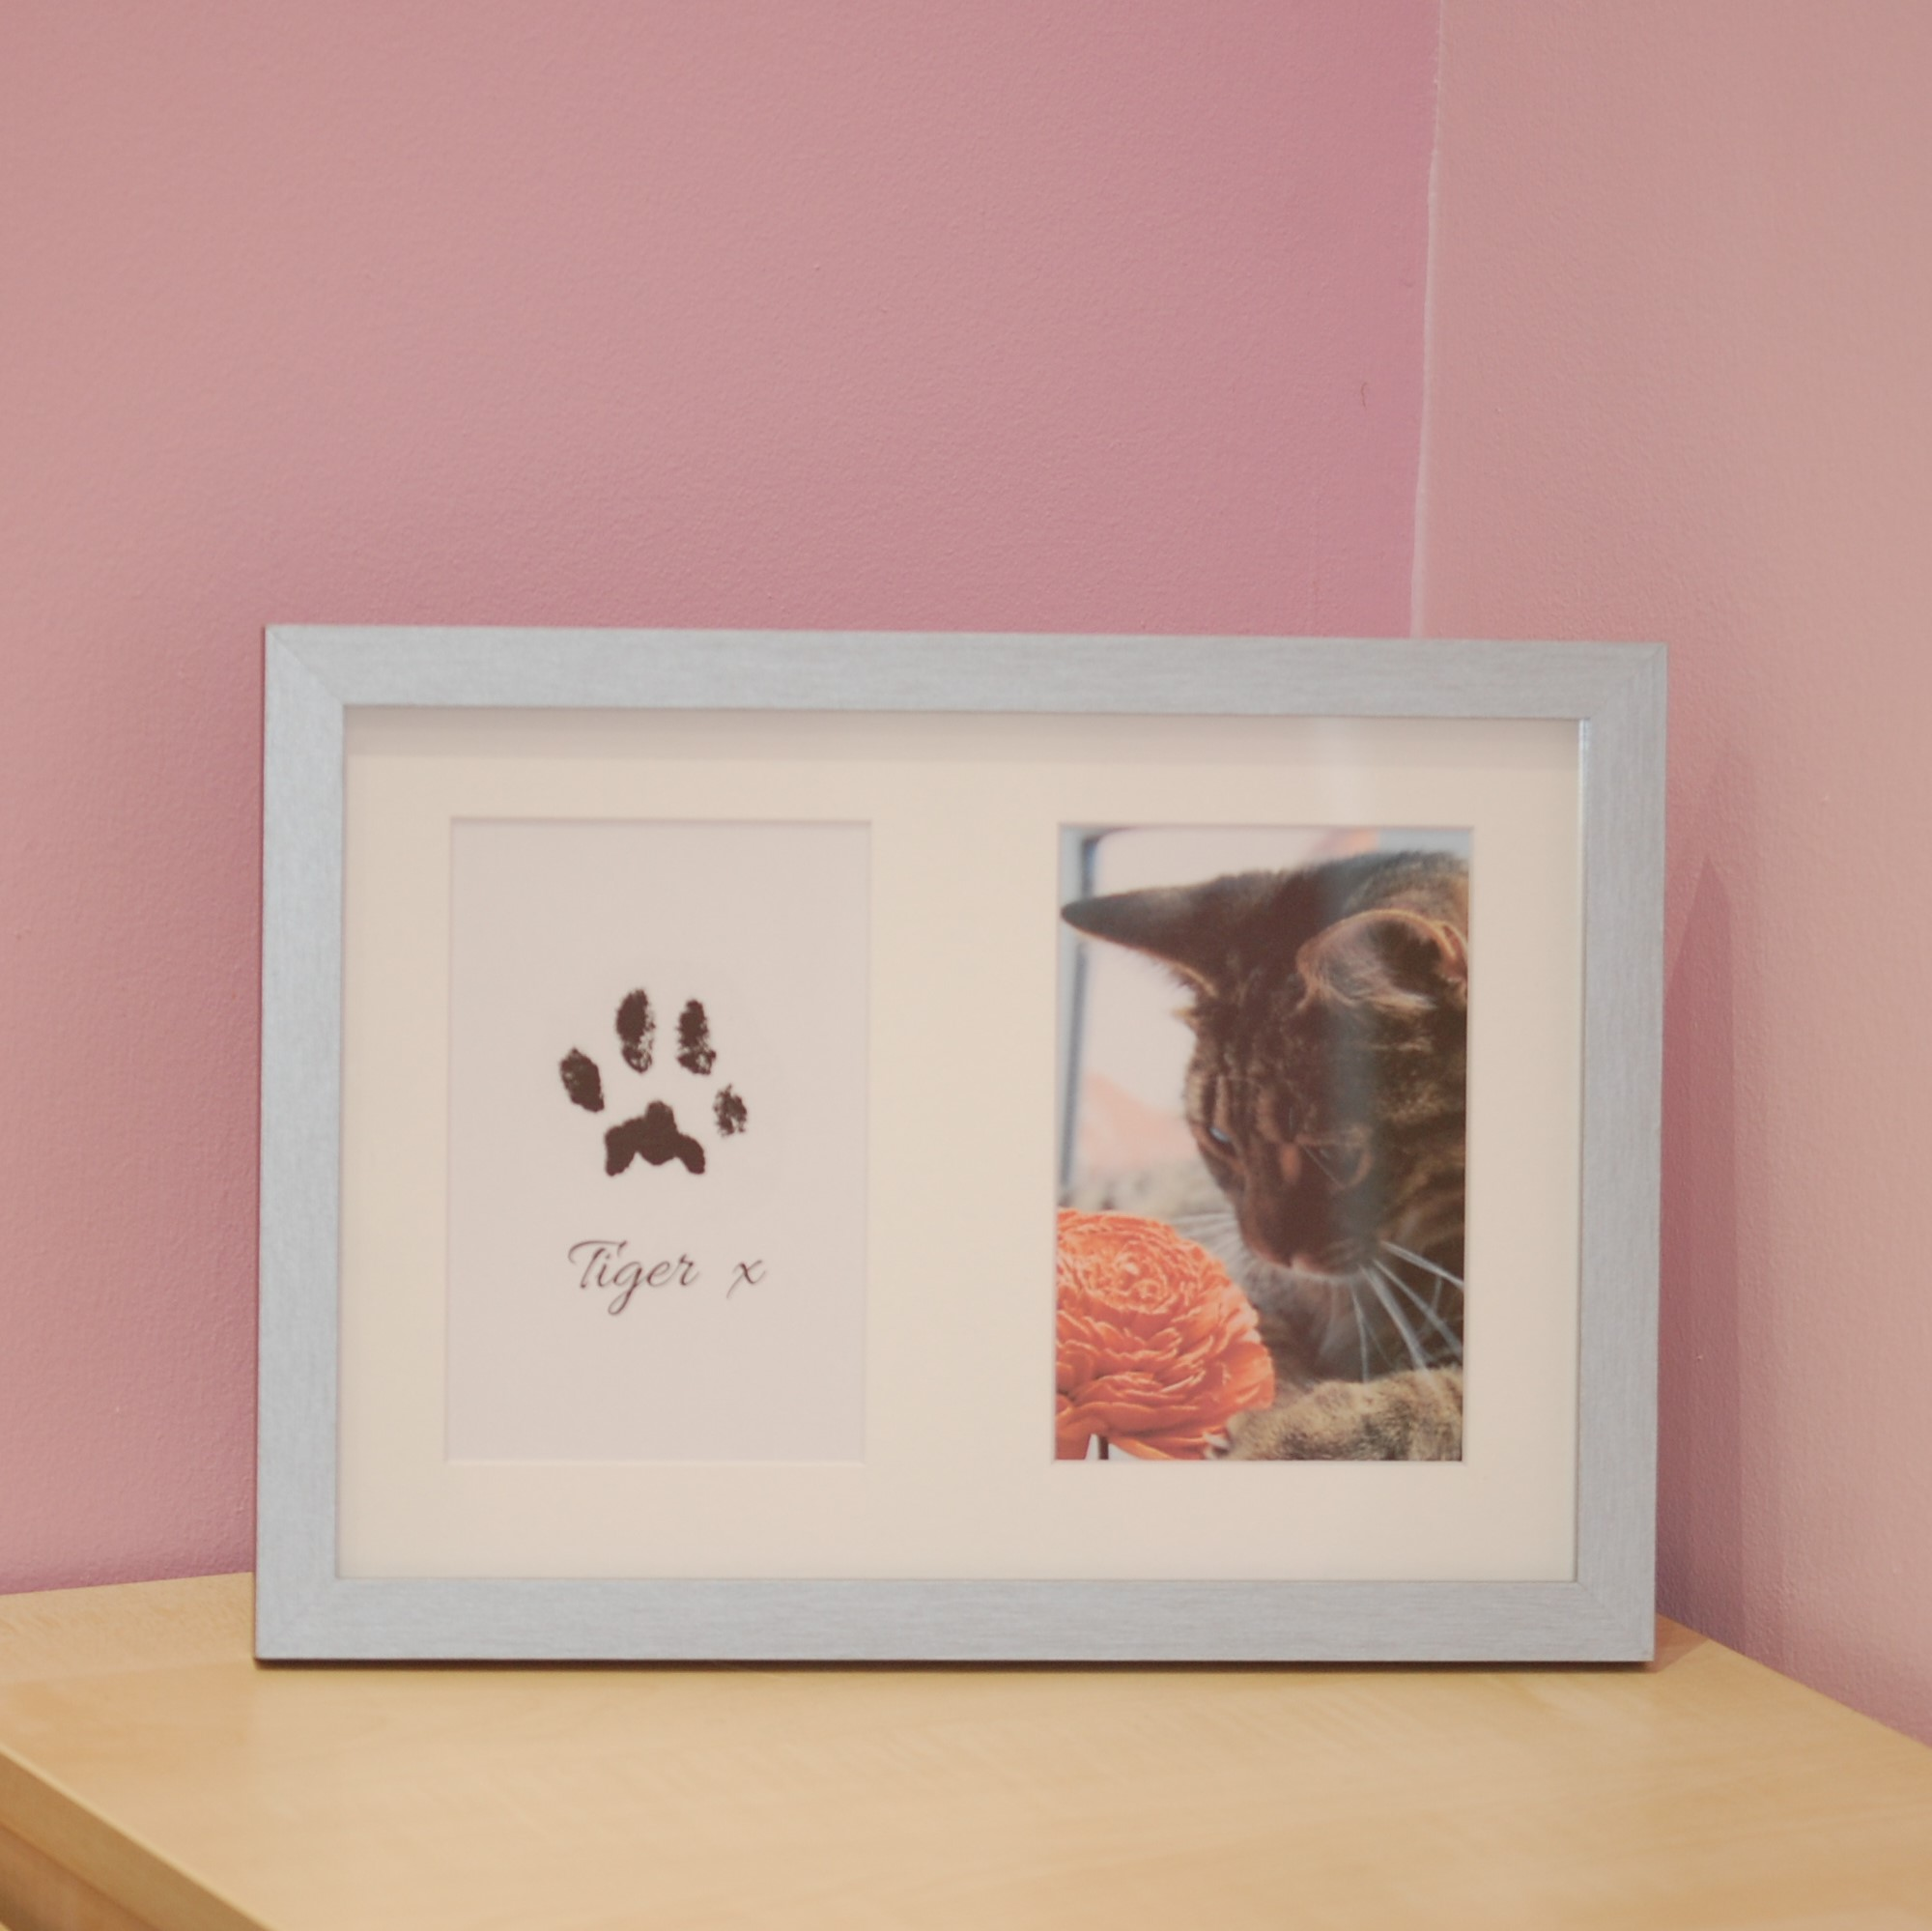 Brushed silver frame with cat paw print and photo keepsake